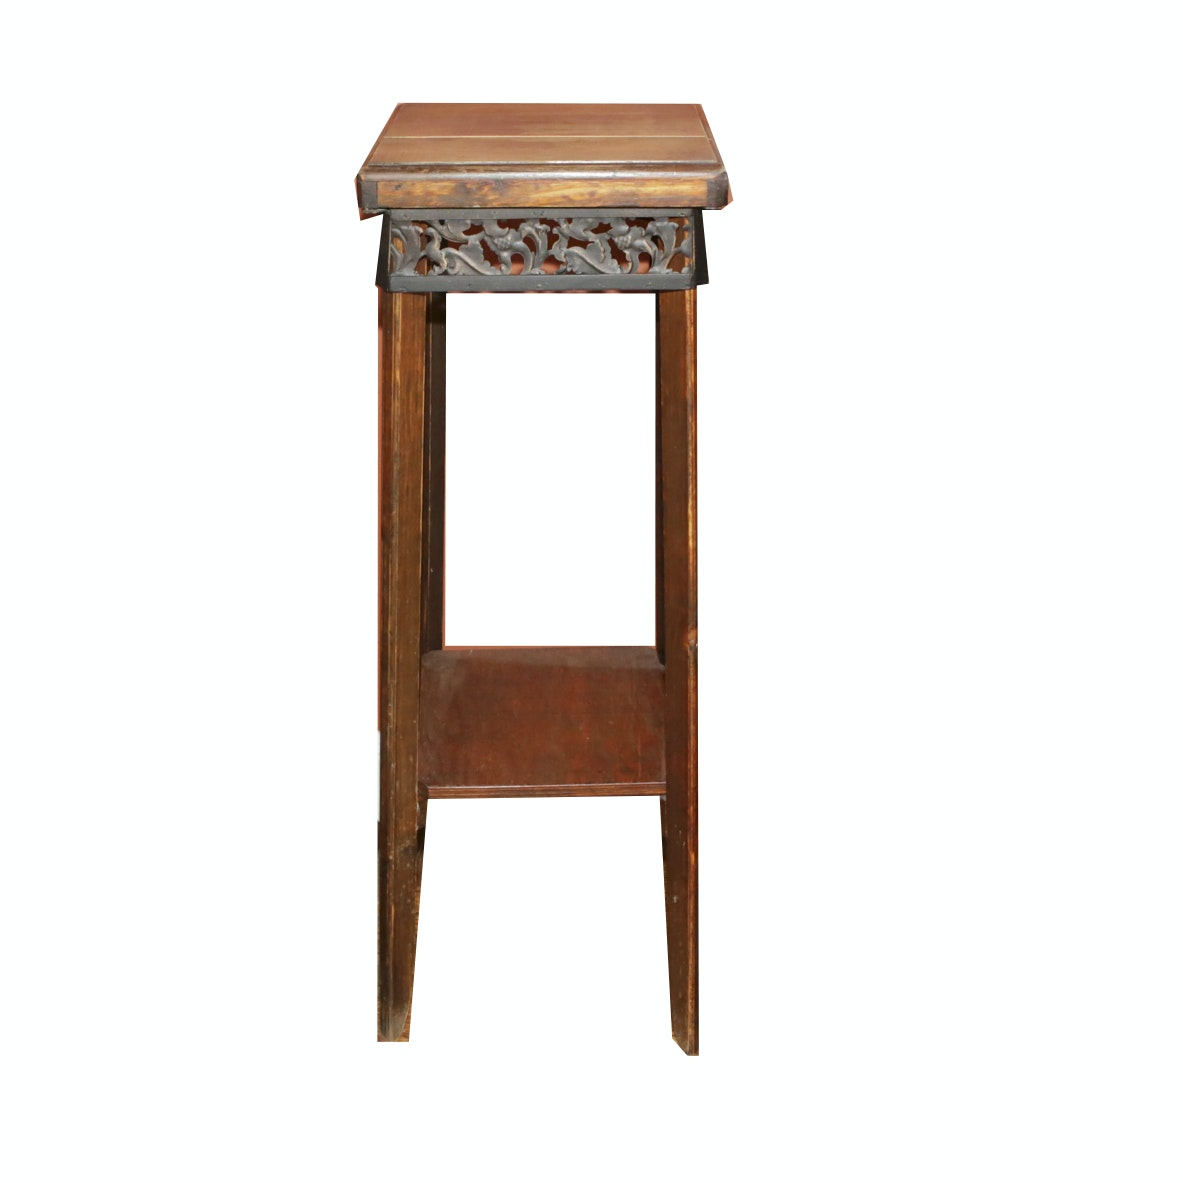 Wooden Plant Stand with Pierced Metal Apron